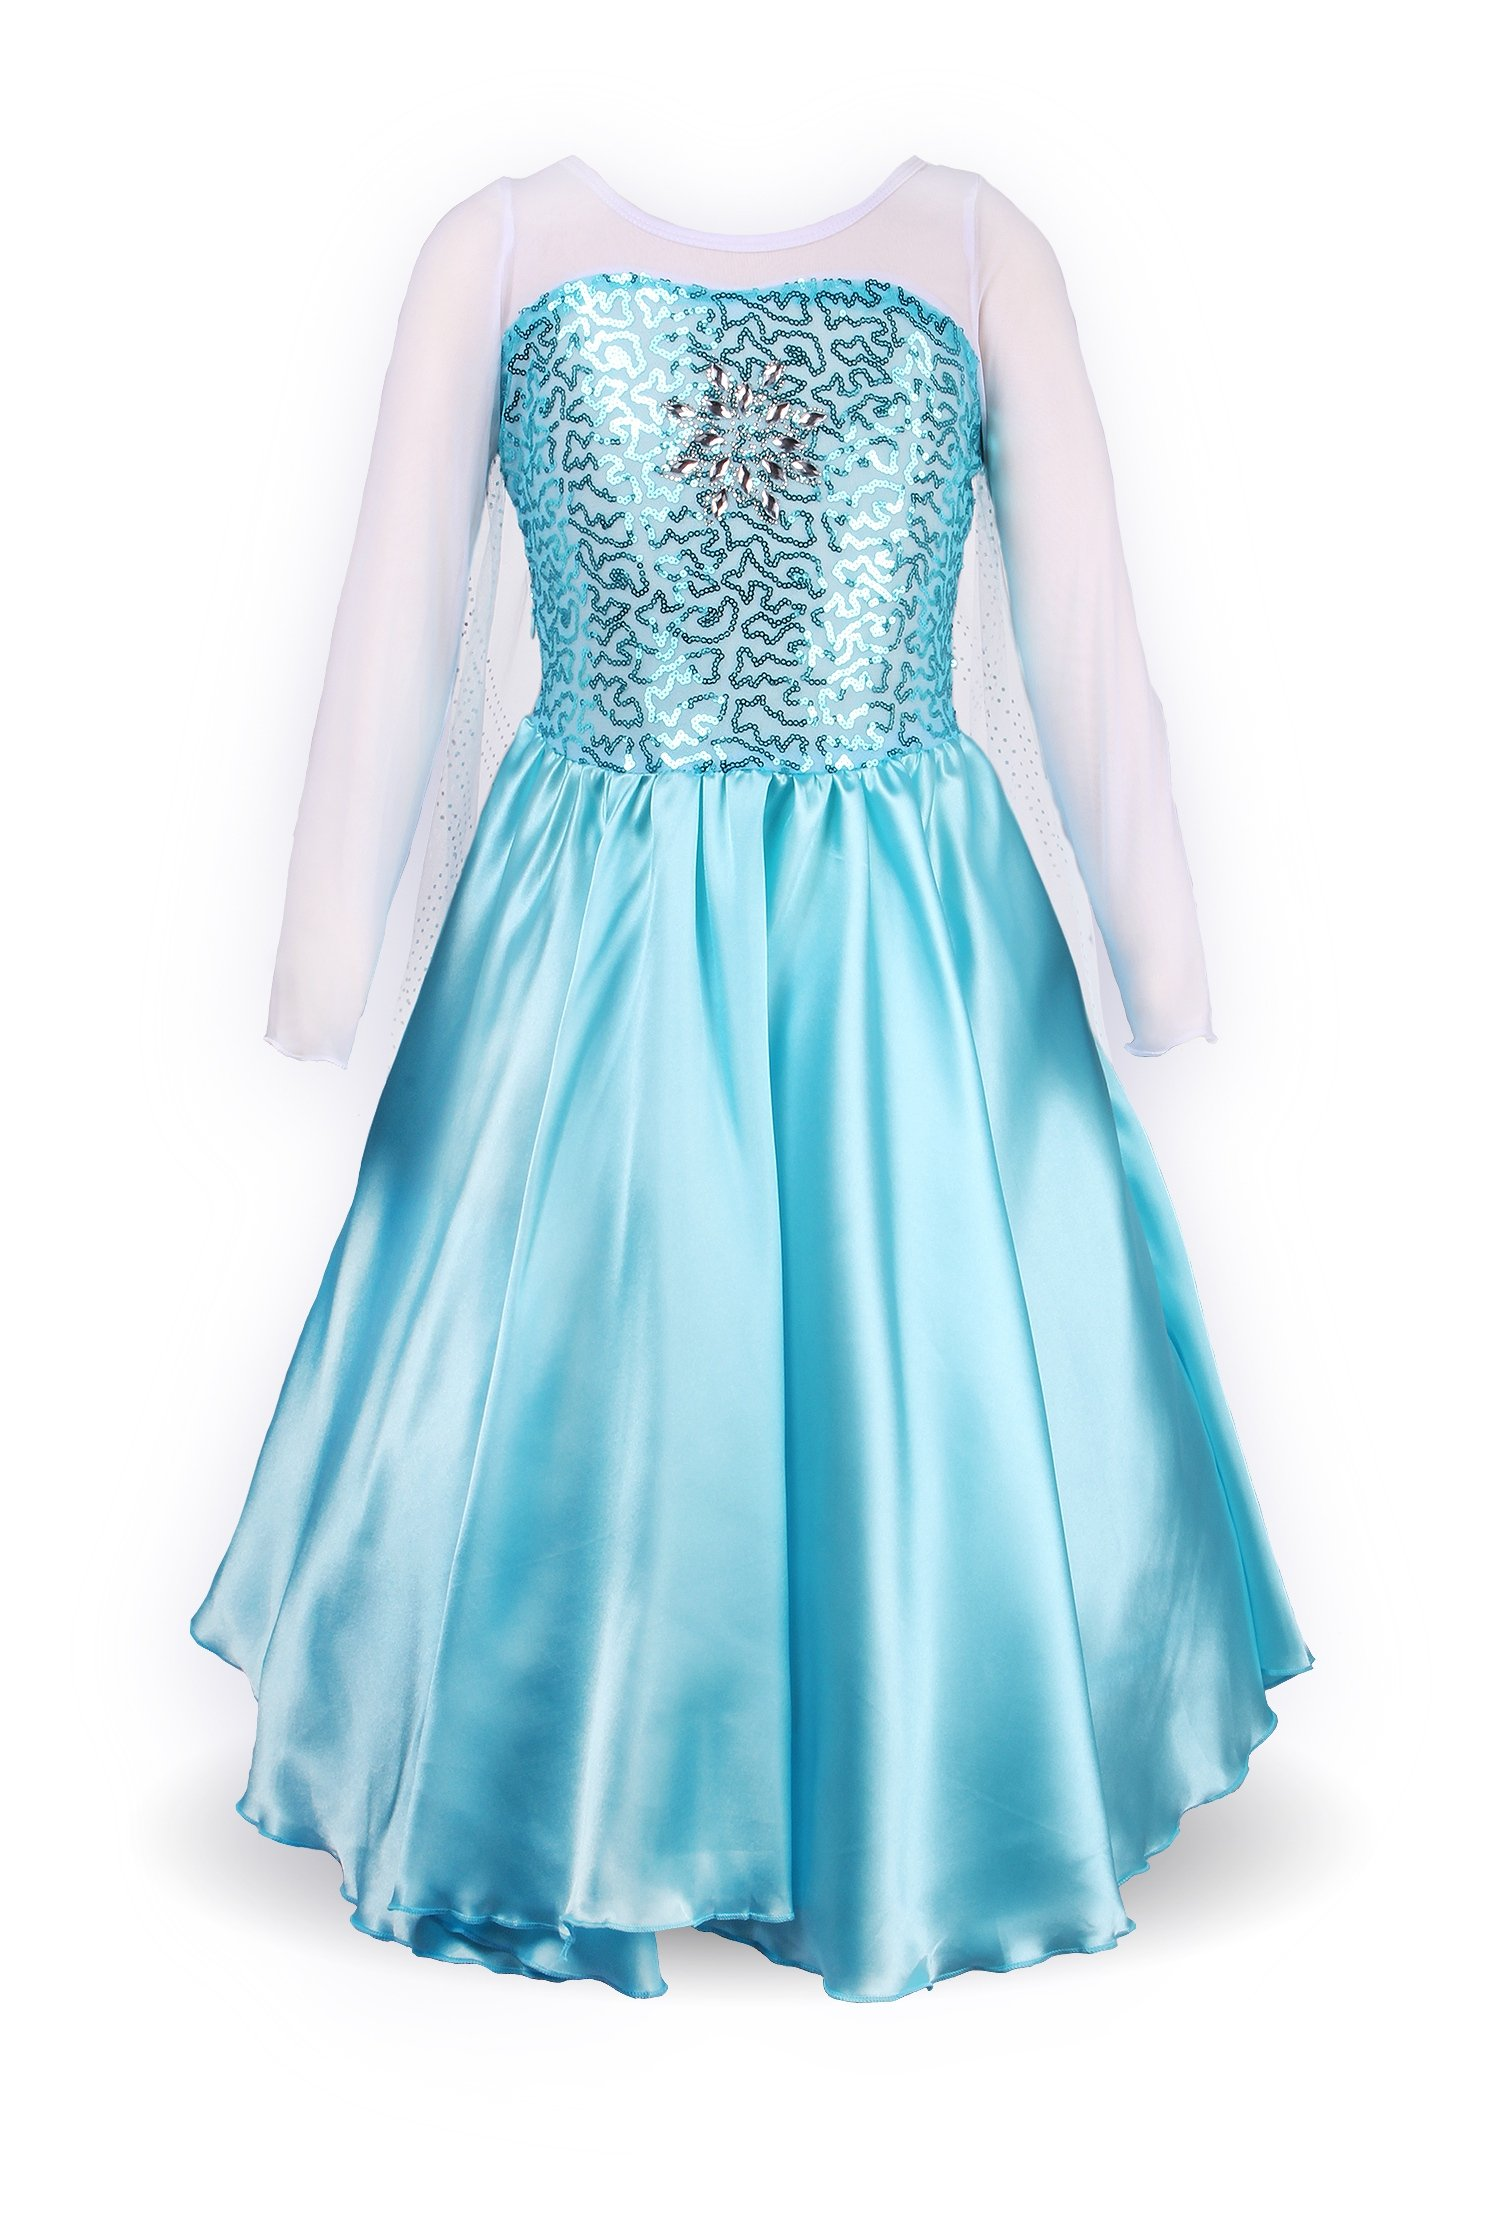 ReliBeauty Little Girl's Princess Fancy Dress Costume, 3T, Sky Blue by ReliBeauty (Image #1)